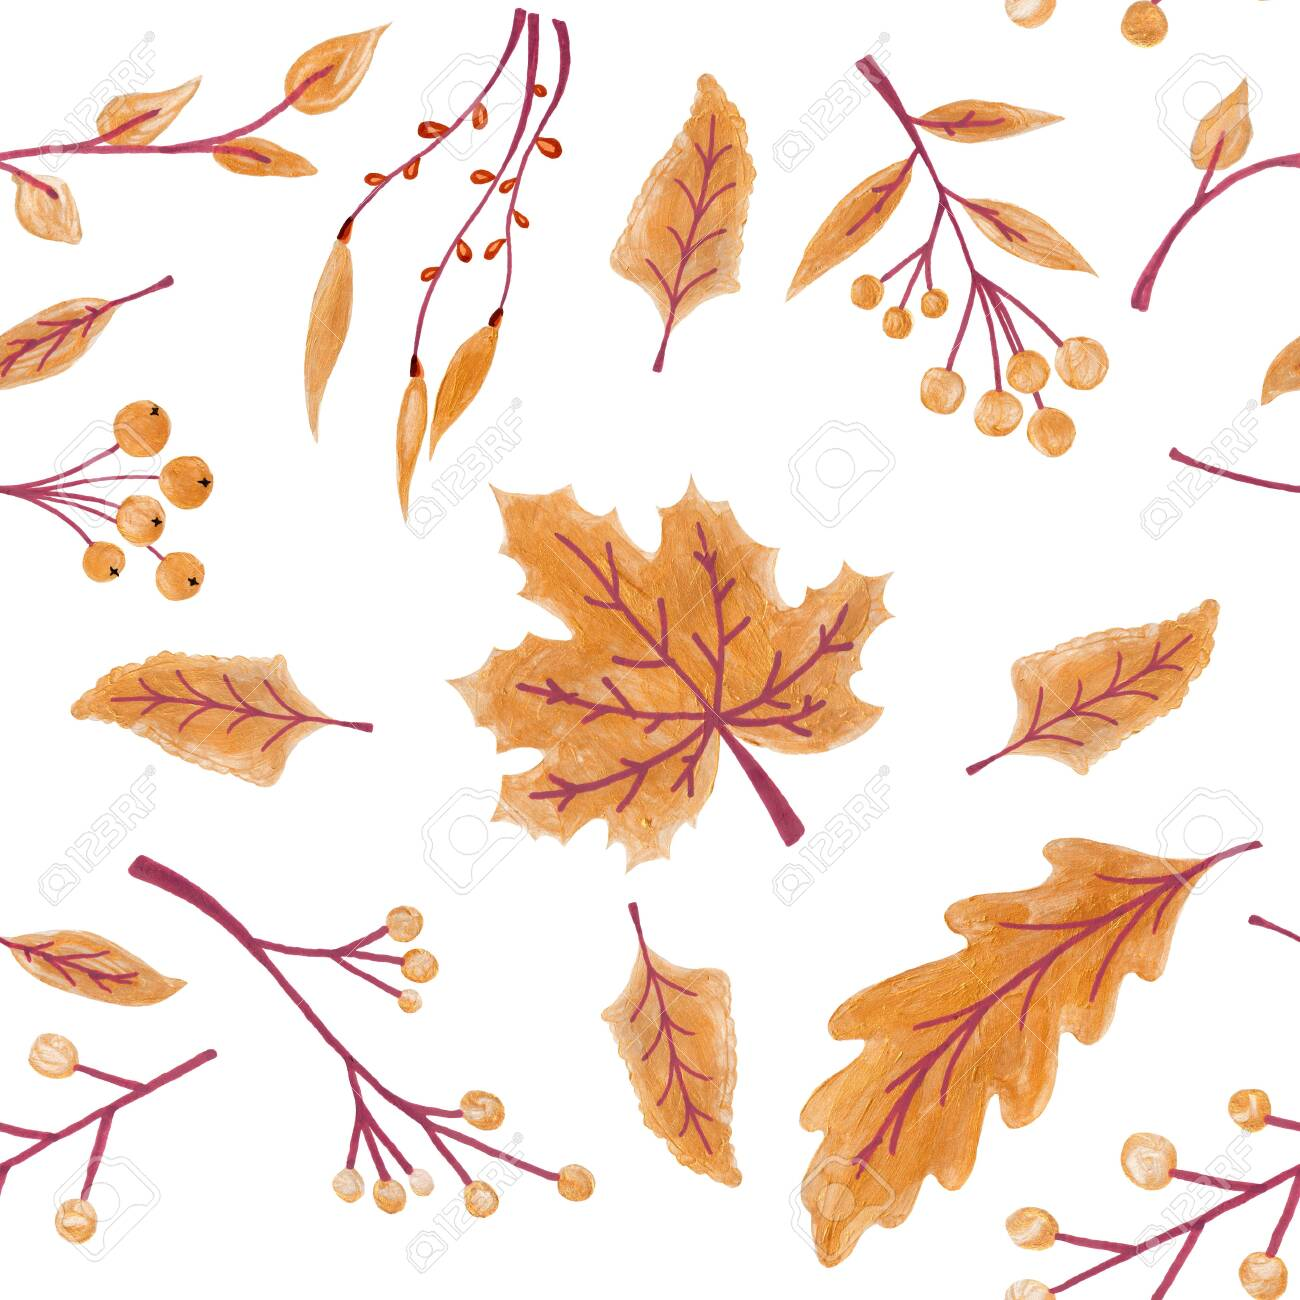 Fall leaves seamless pattern with gold glitter texture. illustration for stylish background, banner, textile, wrapping paper design. orange, yellow, golden colors. - 127956739